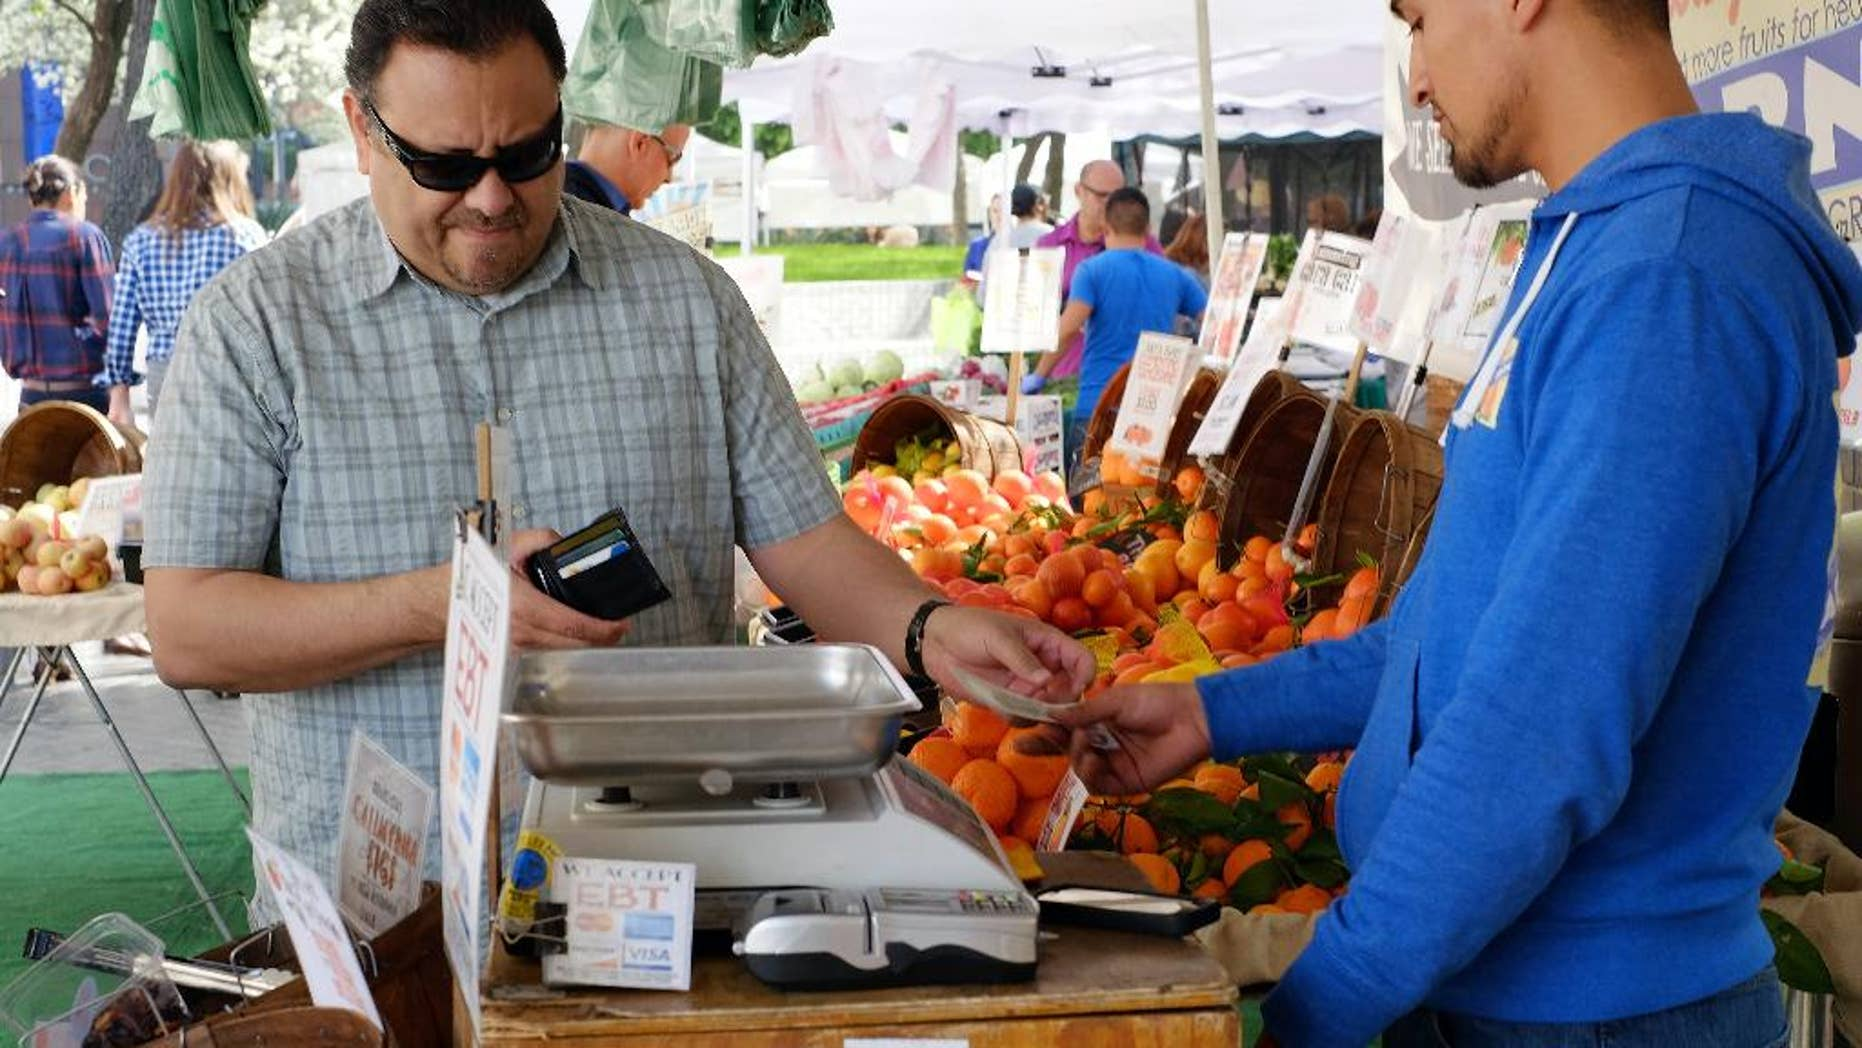 FILE - In this Friday, Feb. 6, 2015 file photo, a shopper pays for his produce at a farmers market in downtown Los Angeles.  The Commerce Department releases its April report on consumer spending, which accounts for 70 percent of economic activity, on Monday, June 1, 2015. (AP Photo/Richard Vogel, File)